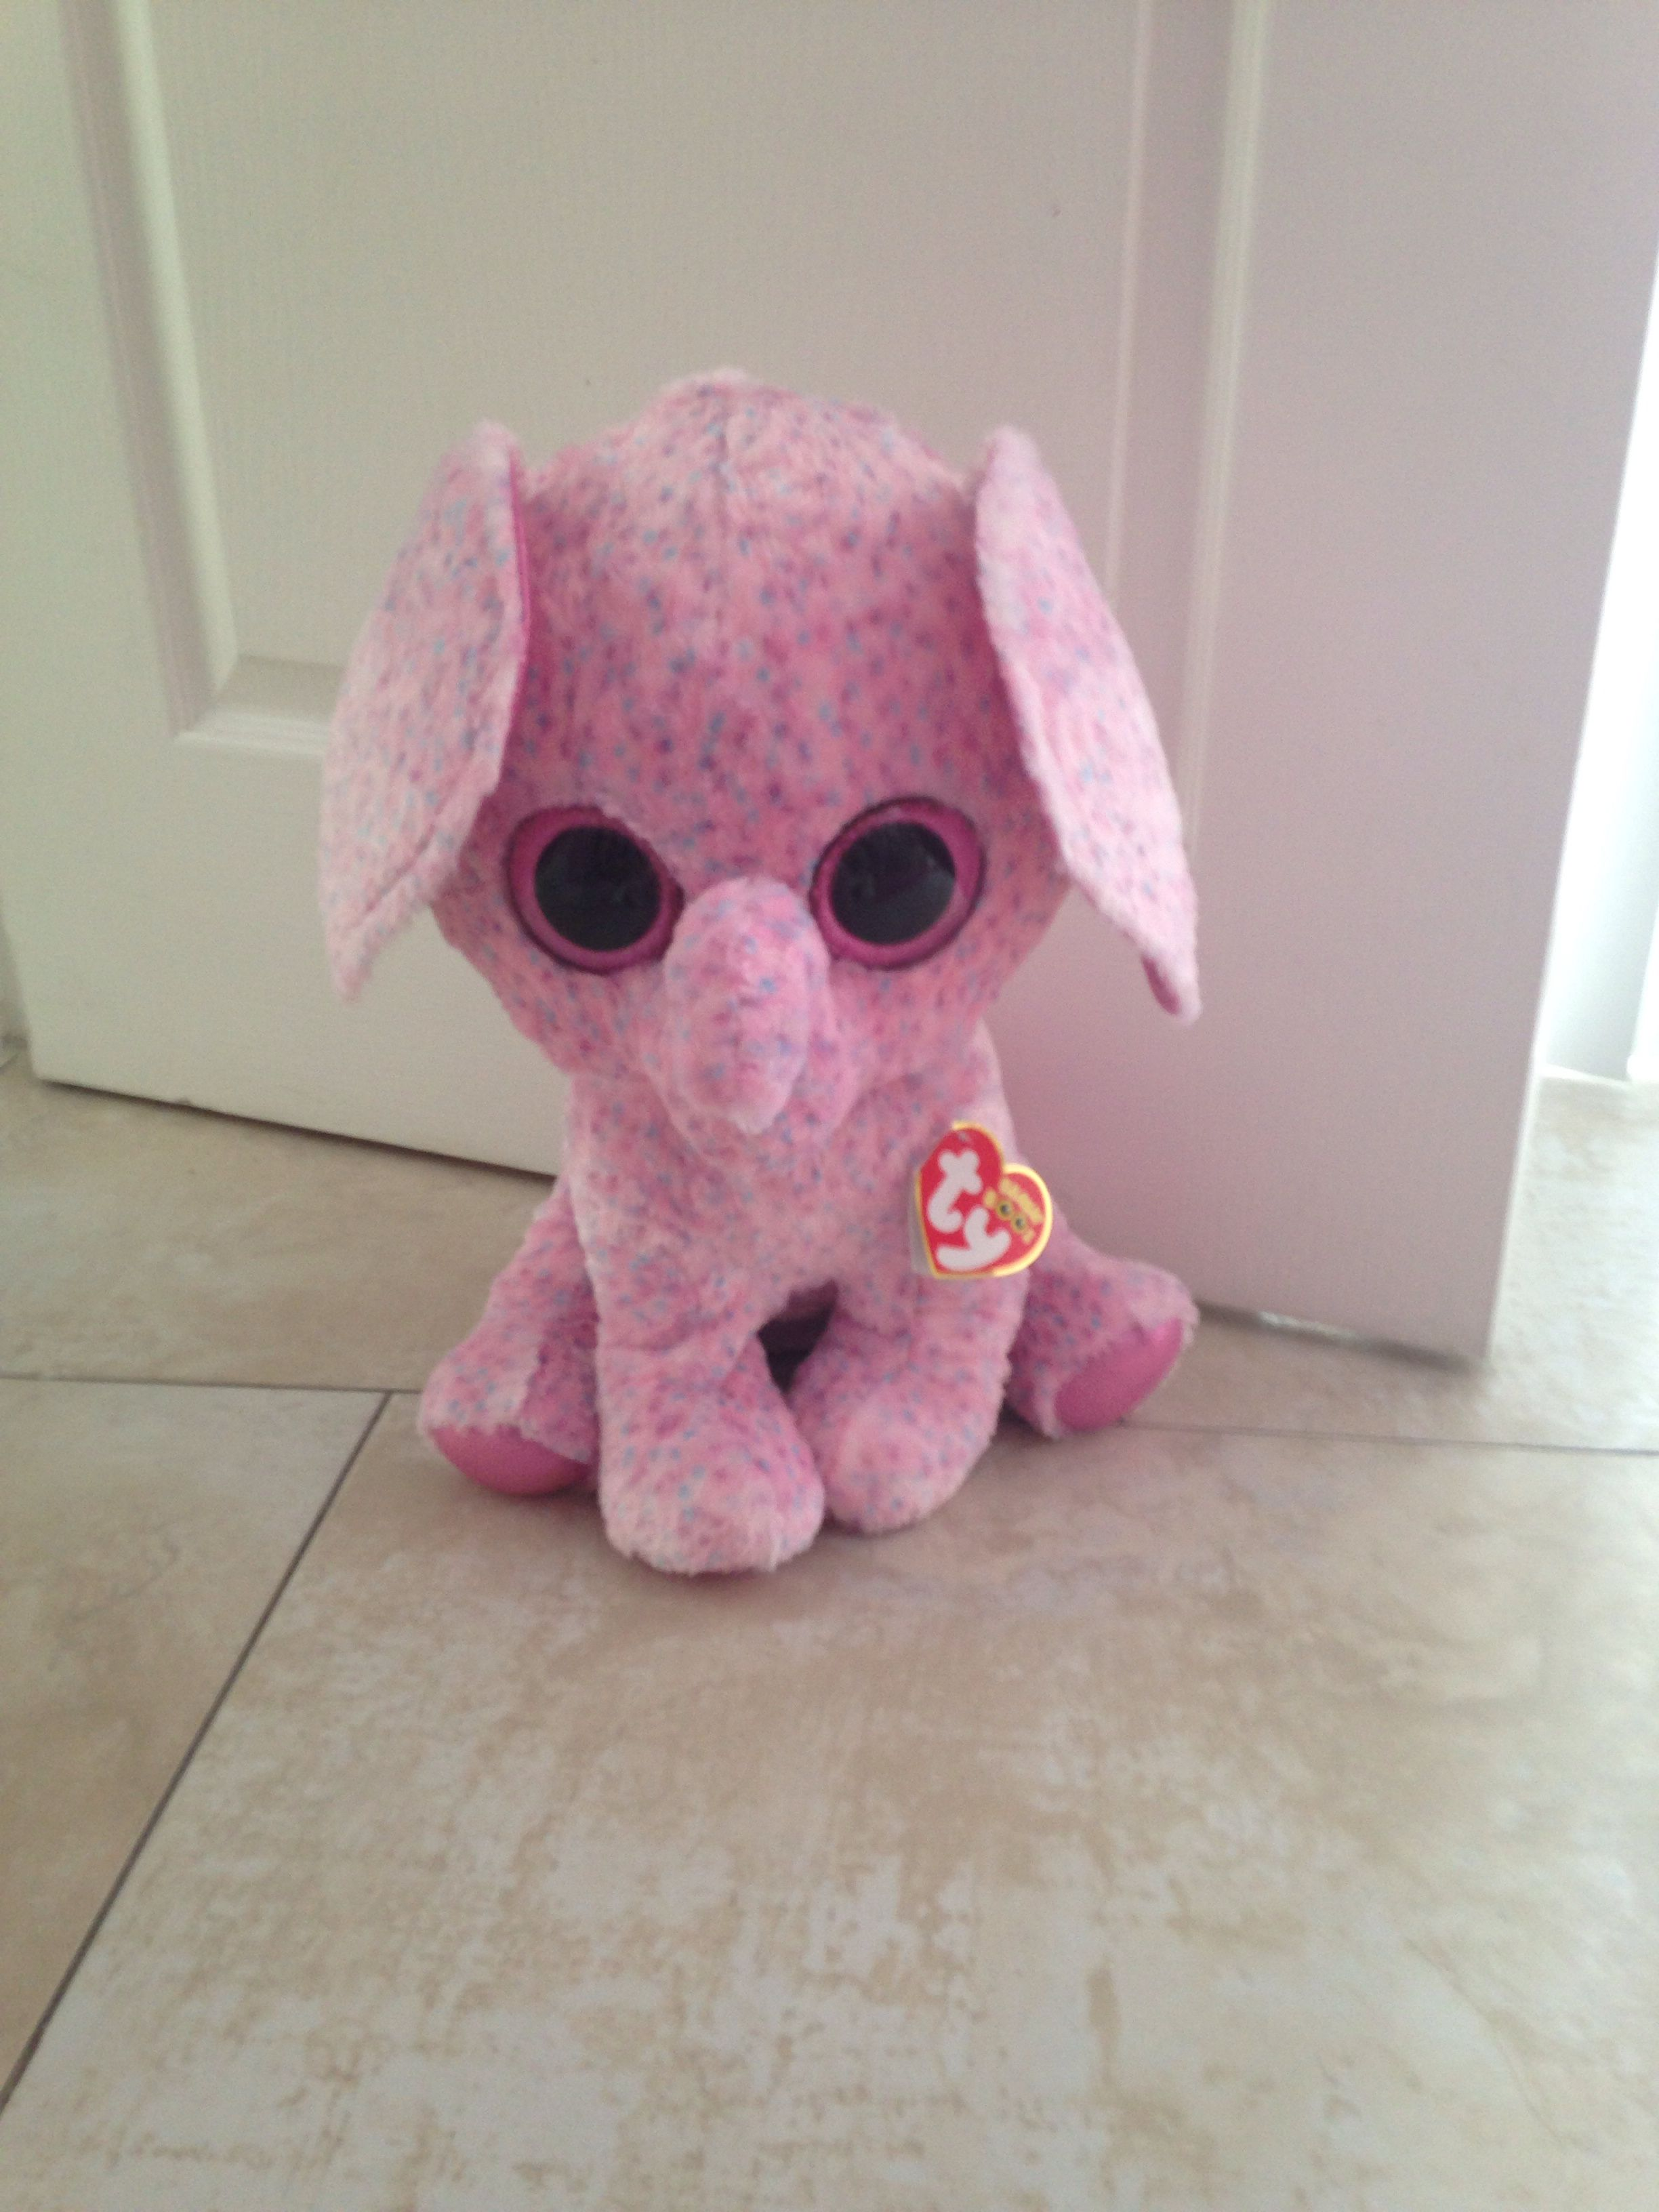 This is Ellie the elephant